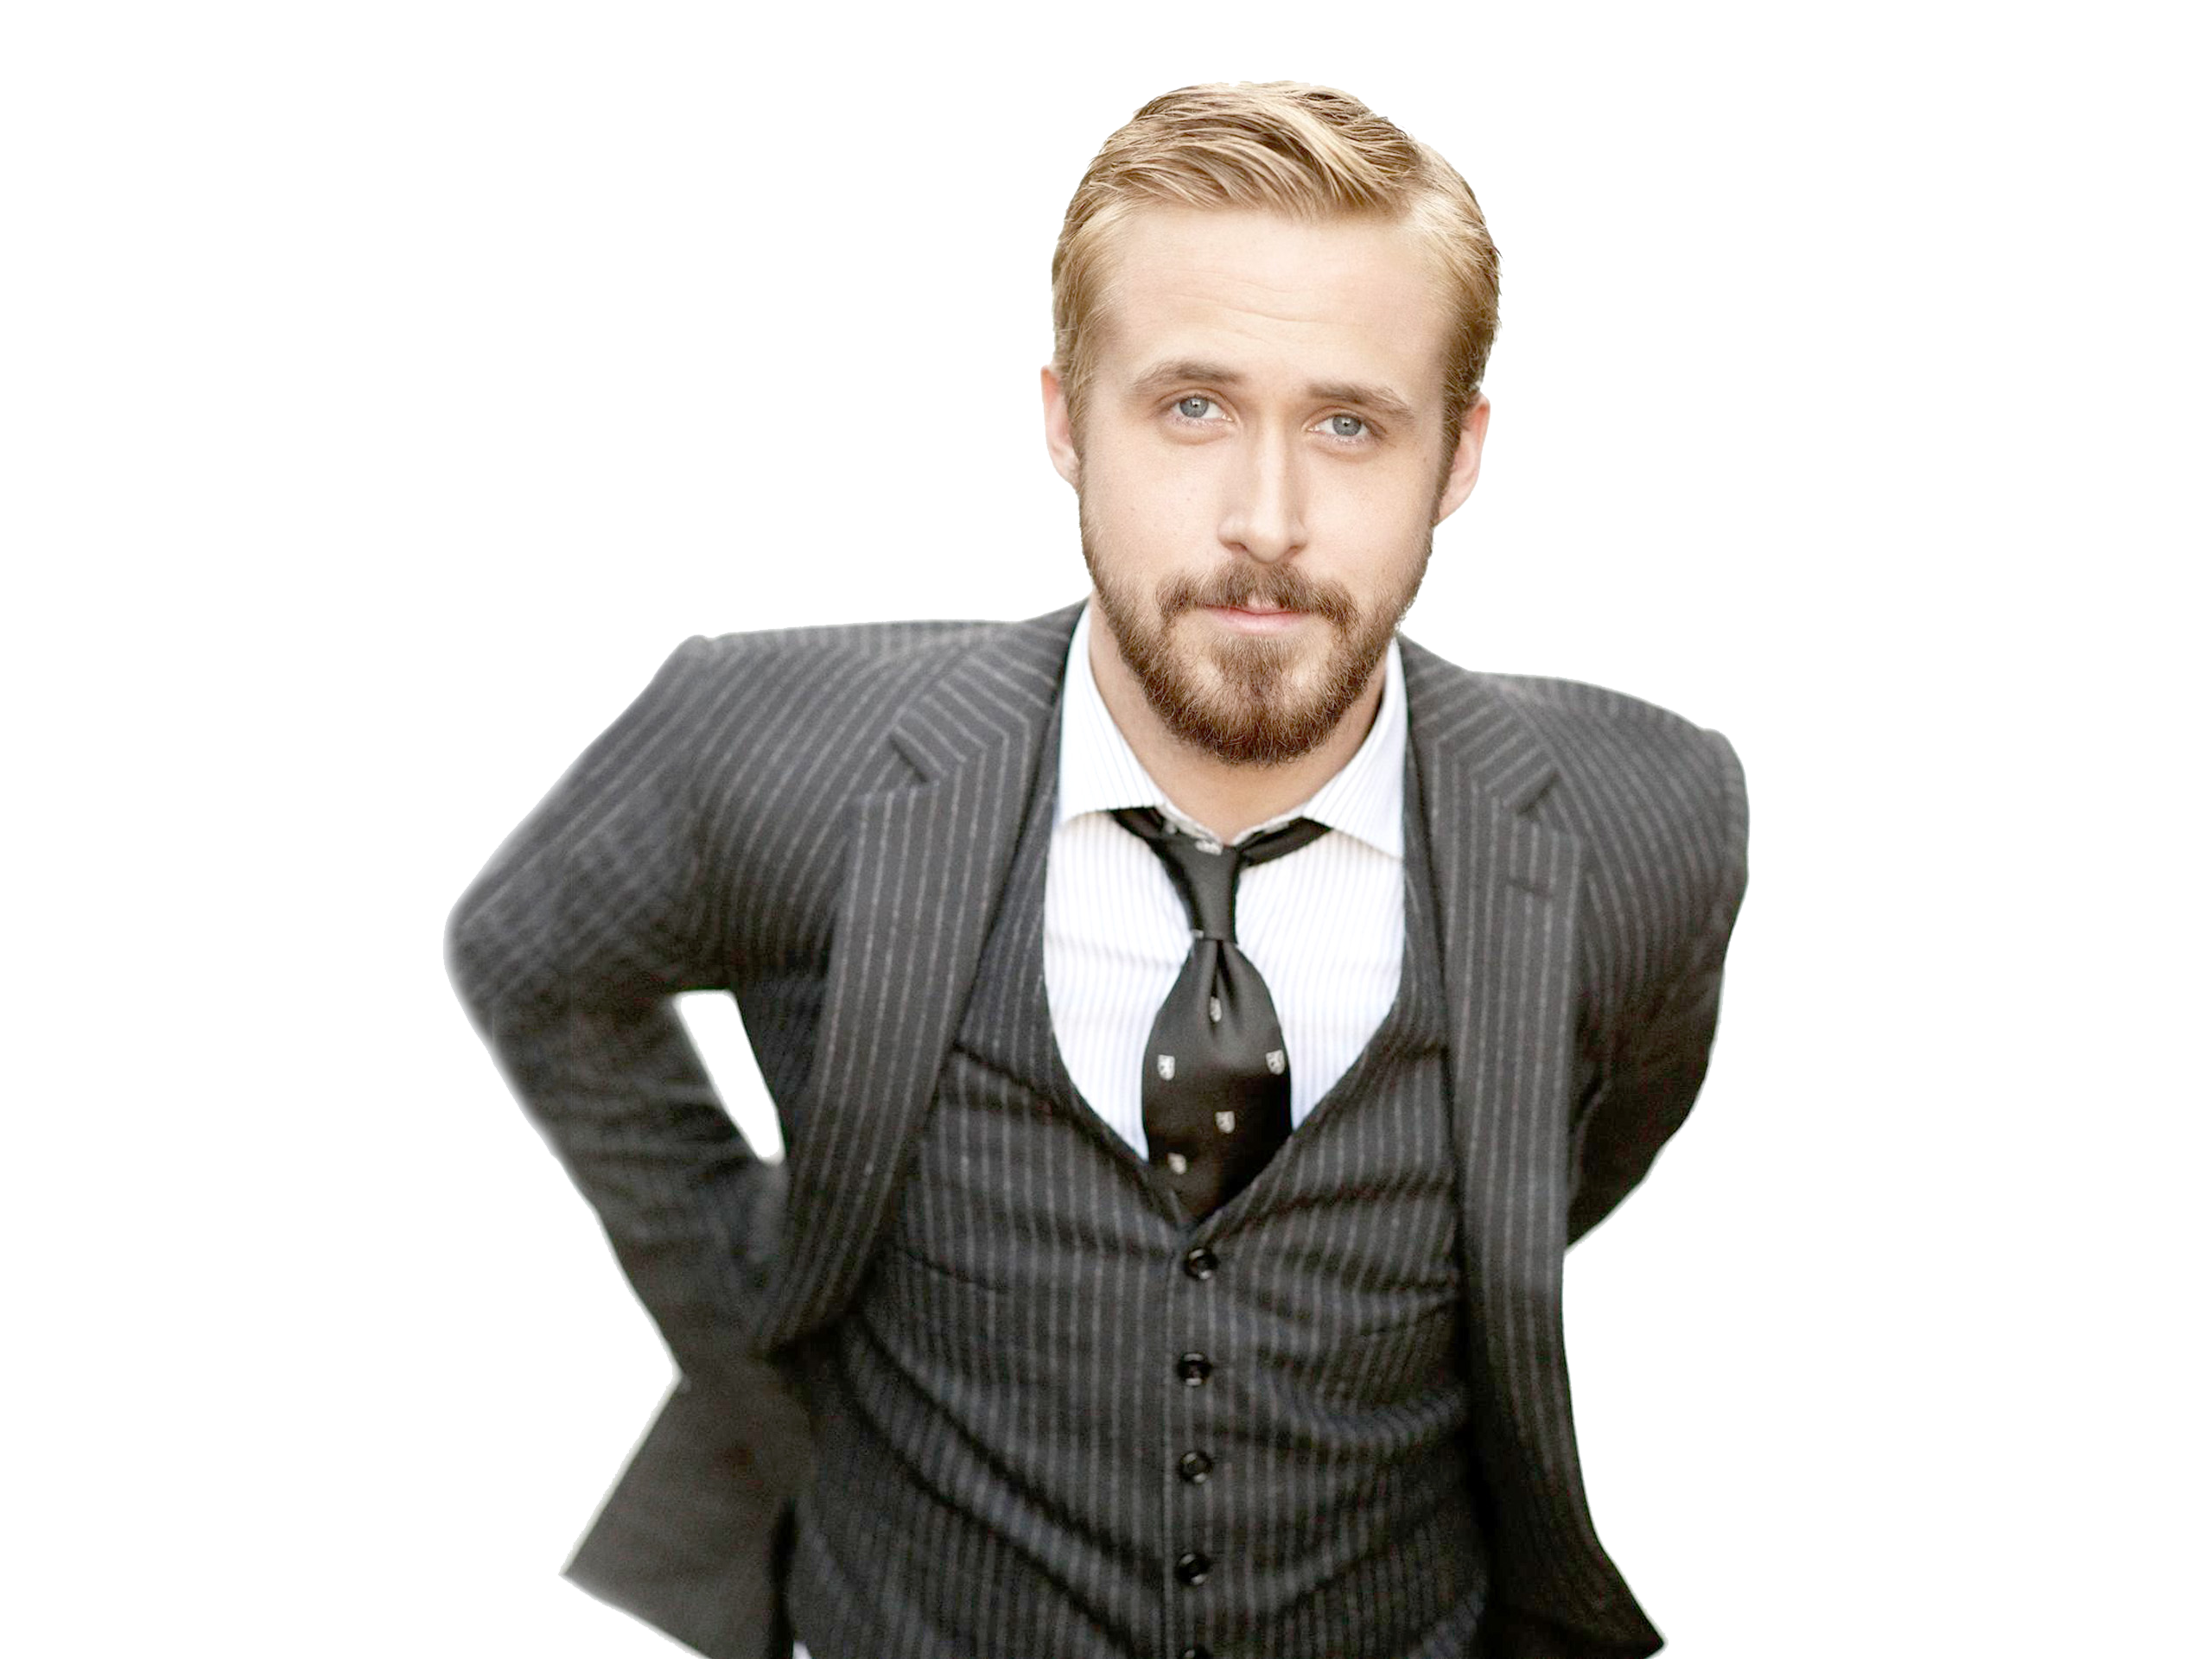 Ryan gosling clipart png transparent 37+ Ryan Gosling Clipart | ClipartLook png transparent